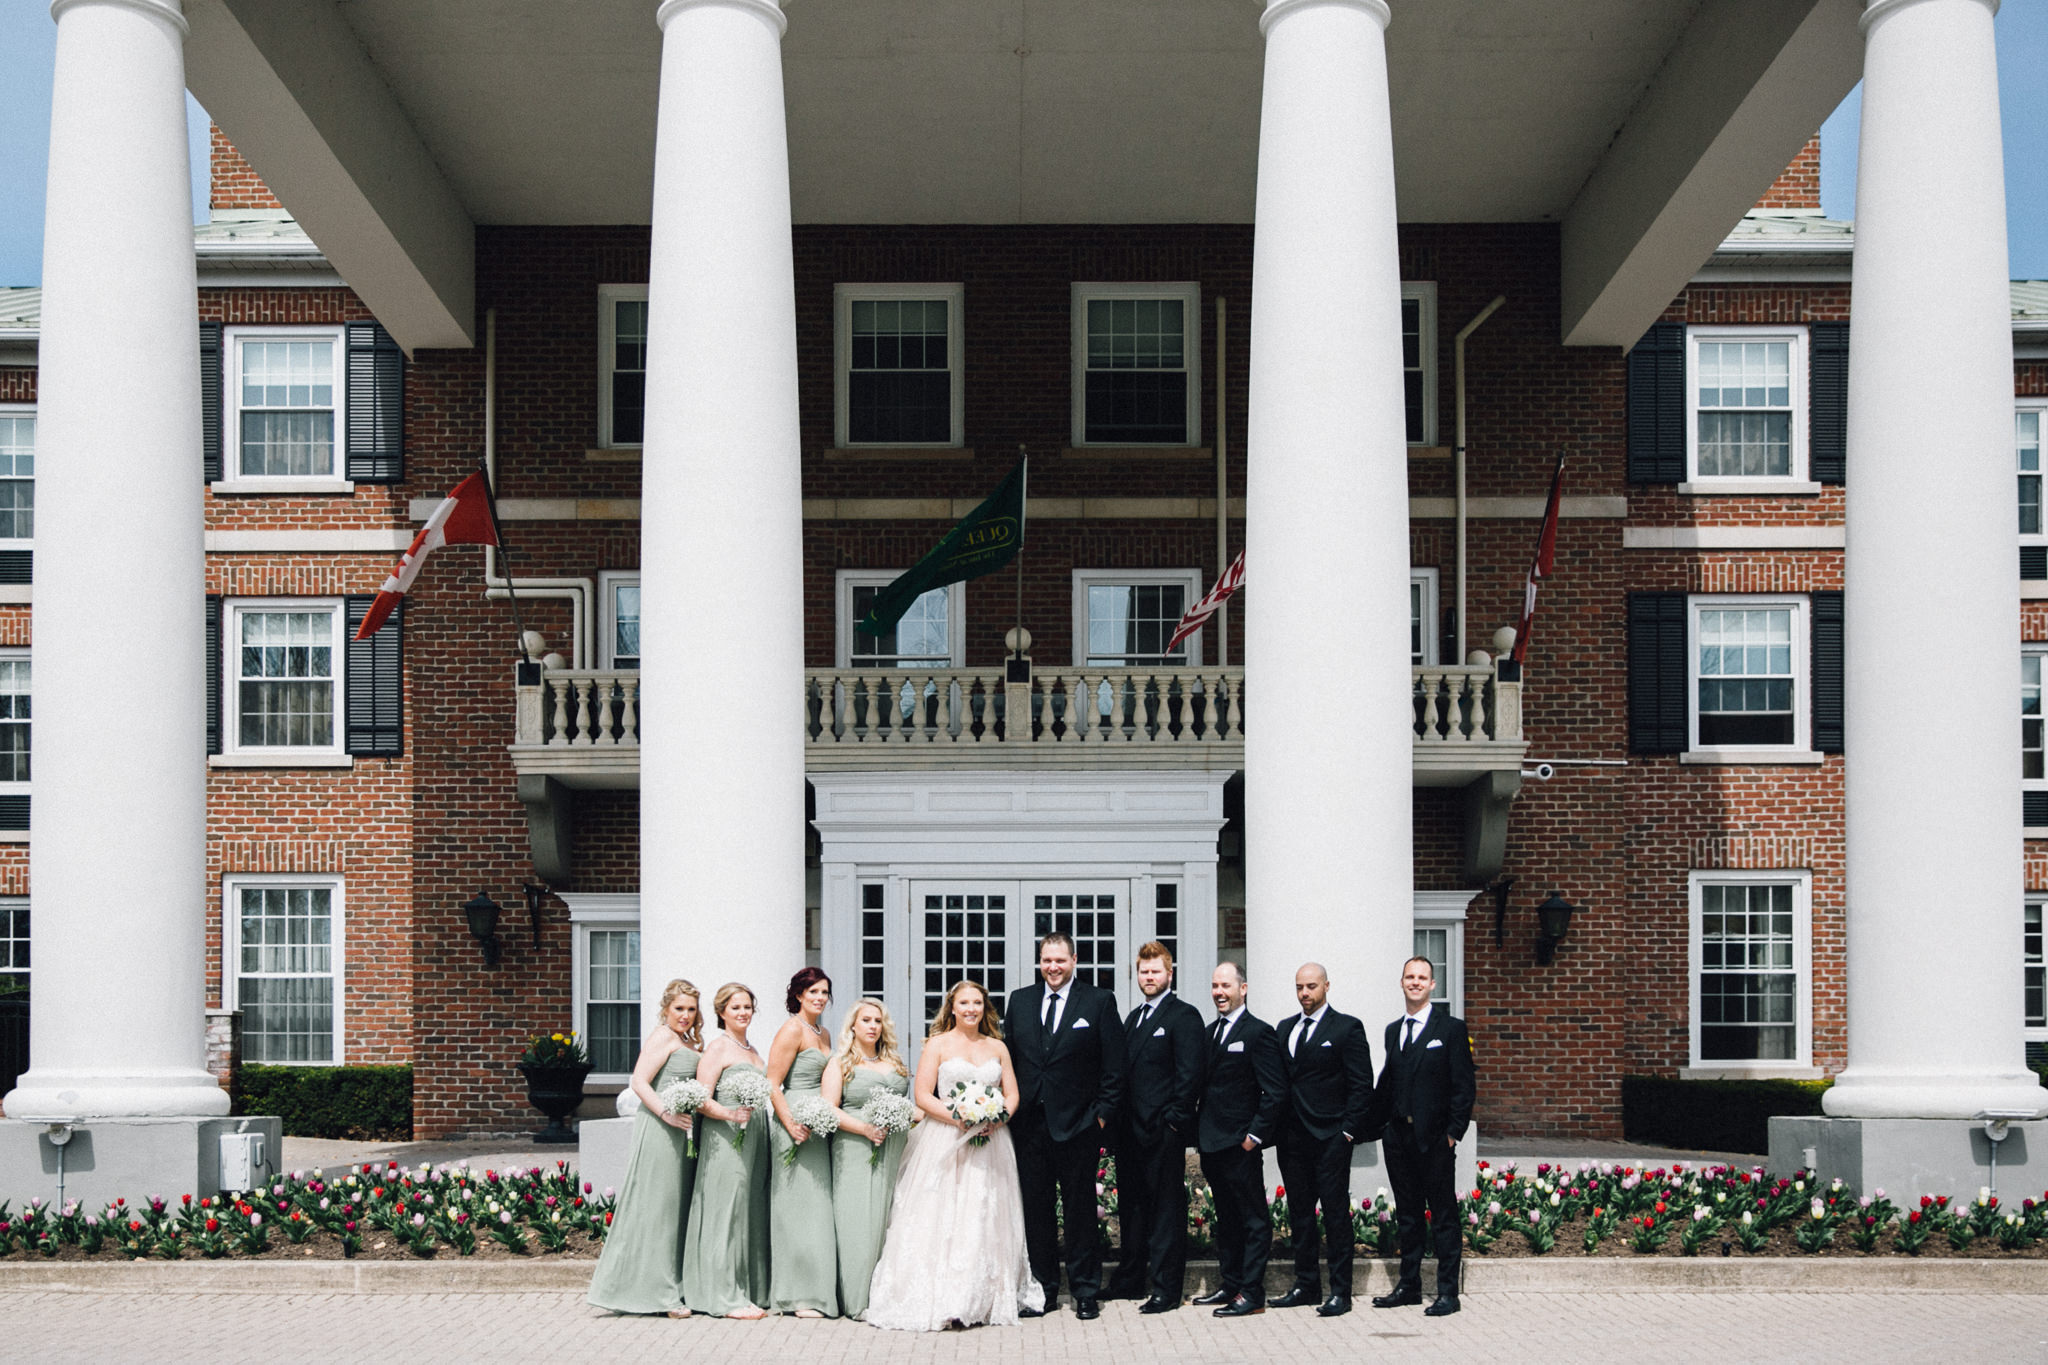 Queens-Landing-Niagara-on-the-Lake-Wedding-photography-by-Simply-Lace-038.JPG